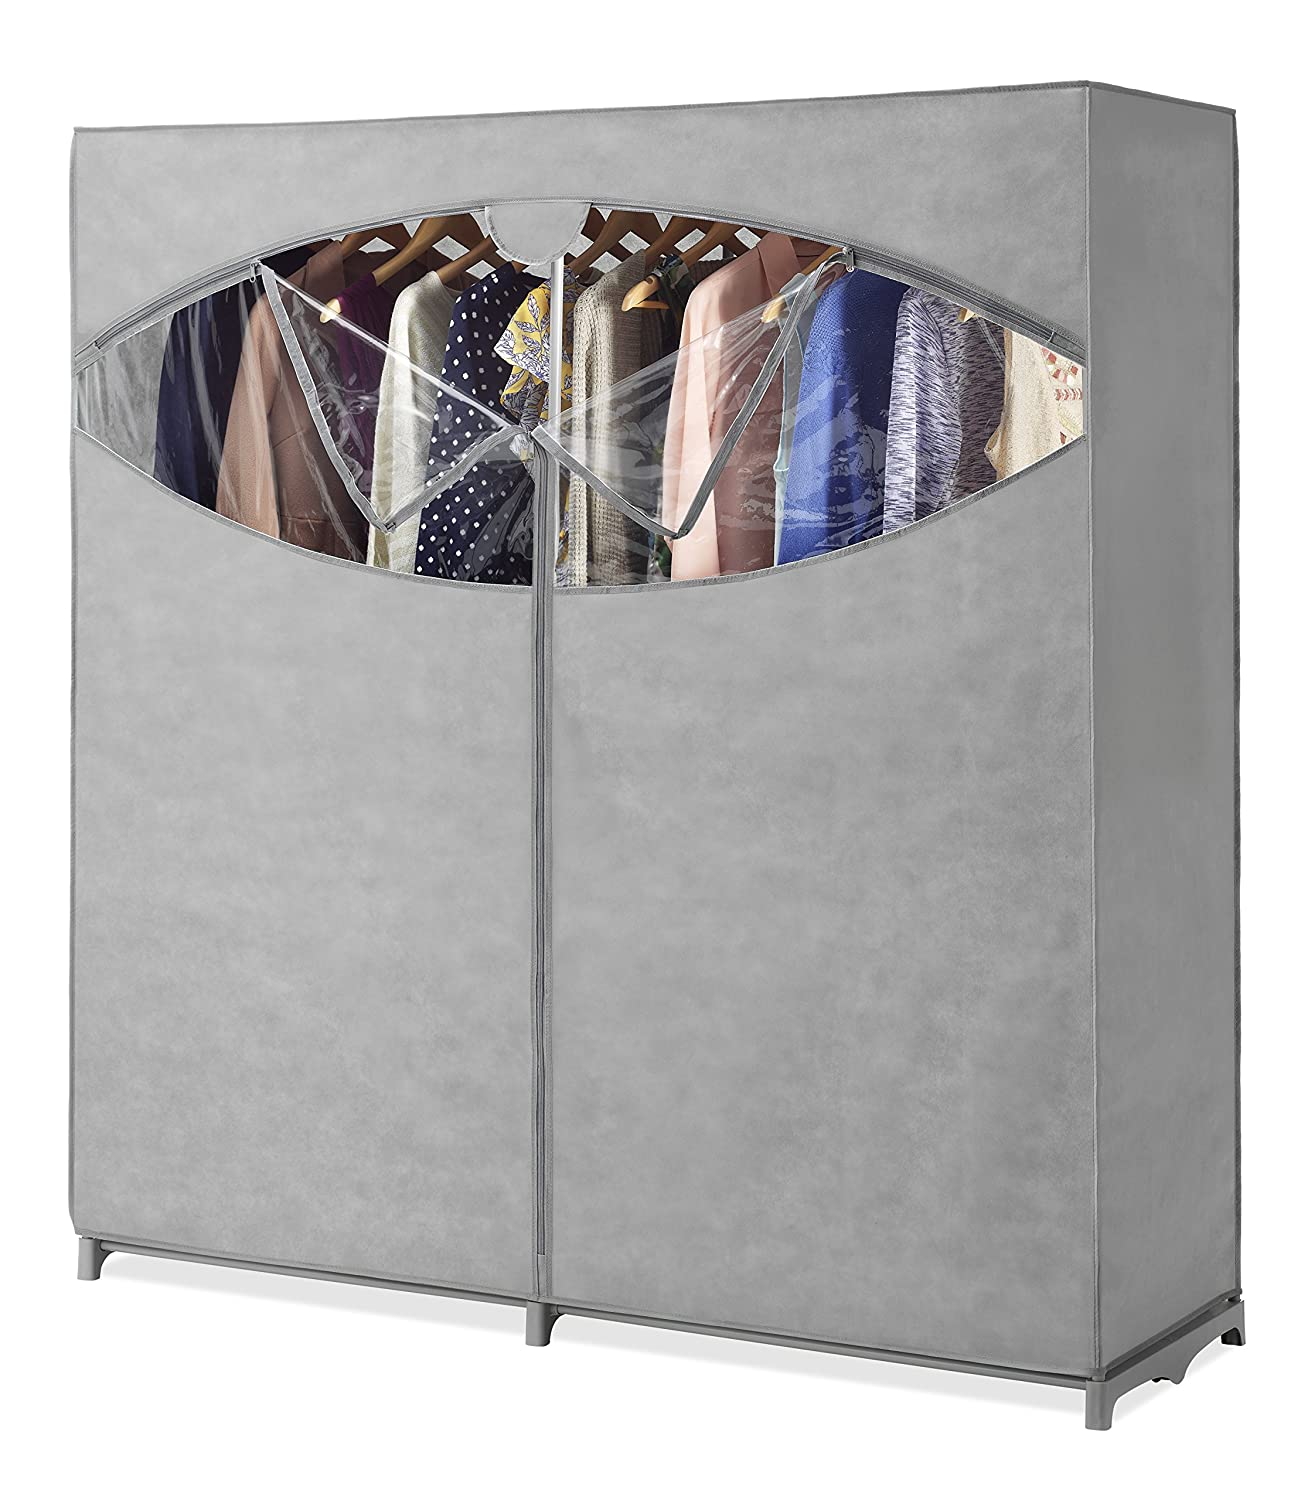 Whitmor Portable Wardrobe Clothes Storage Organizer Closet with Hanging Rack - Extra Wide -Grey Color - No-tool Assembly - Extra Strong & Durable - 60L x 19.5W x 64